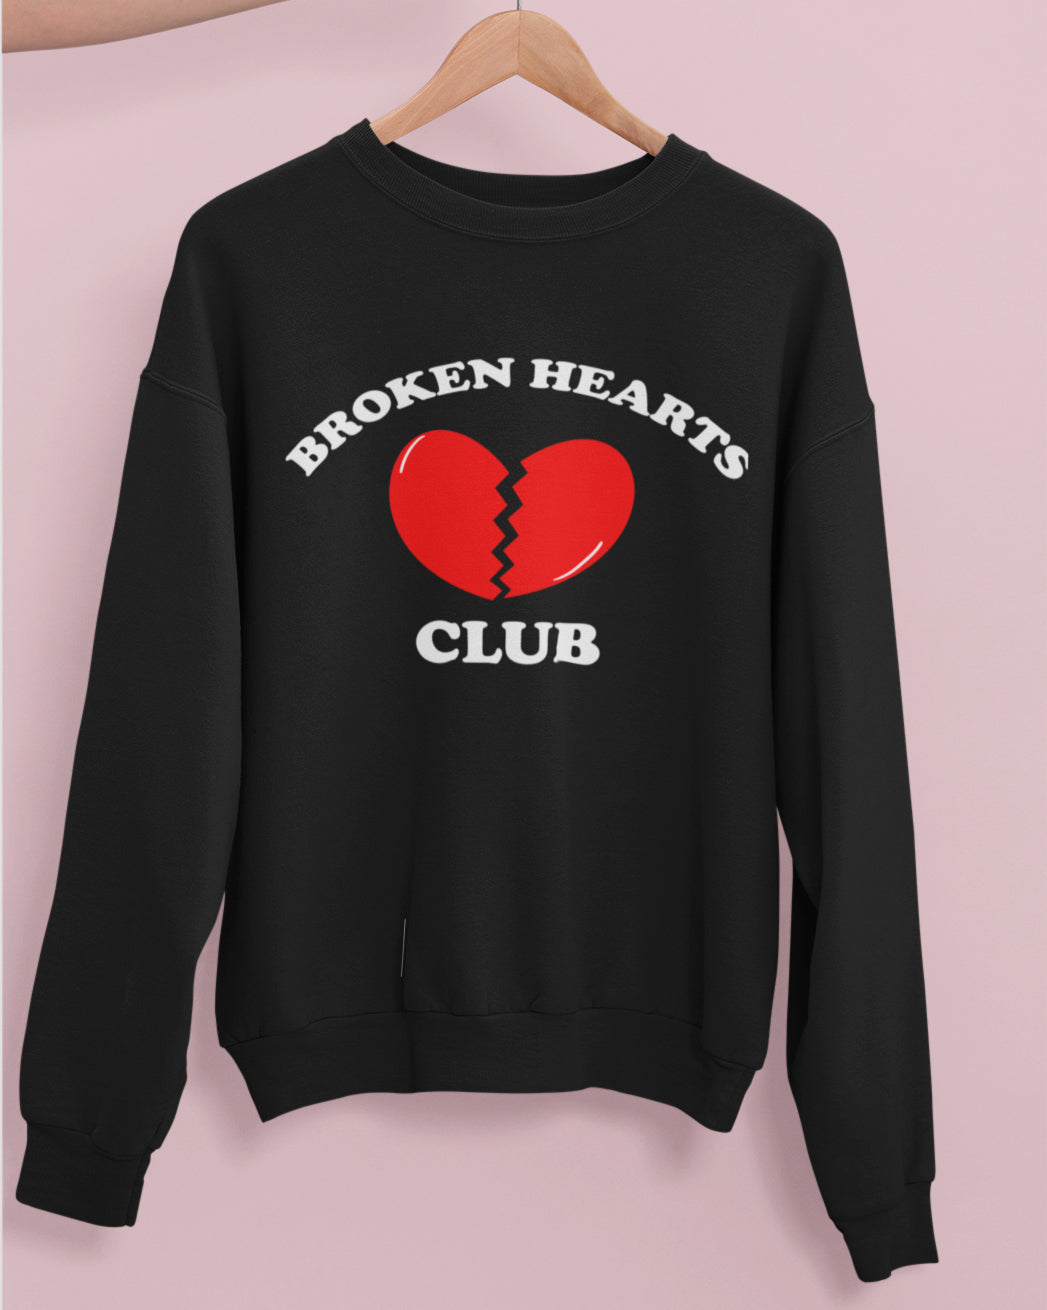 Black sweatshirt with a broken heart that says broken hearts club - HighCiti